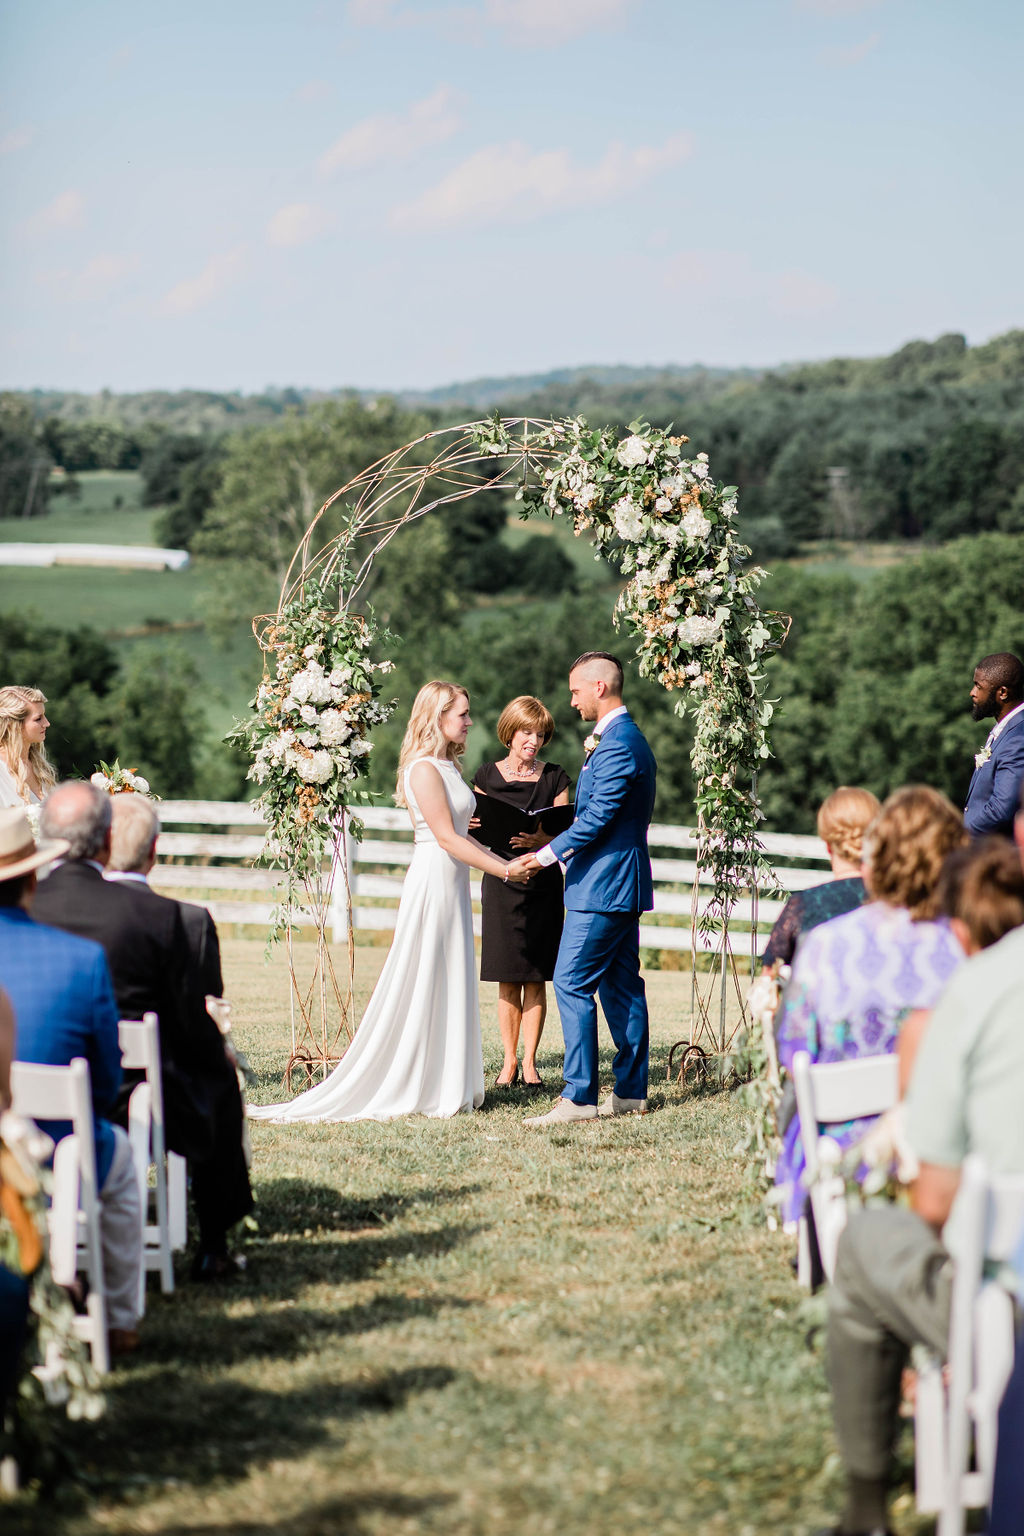 """They said """"I do"""" - Rachel & Patrick exchanged vows under this rustic arch, that looked heavenly draped in the mix of hops, magnolias, gardenias and greenery!"""